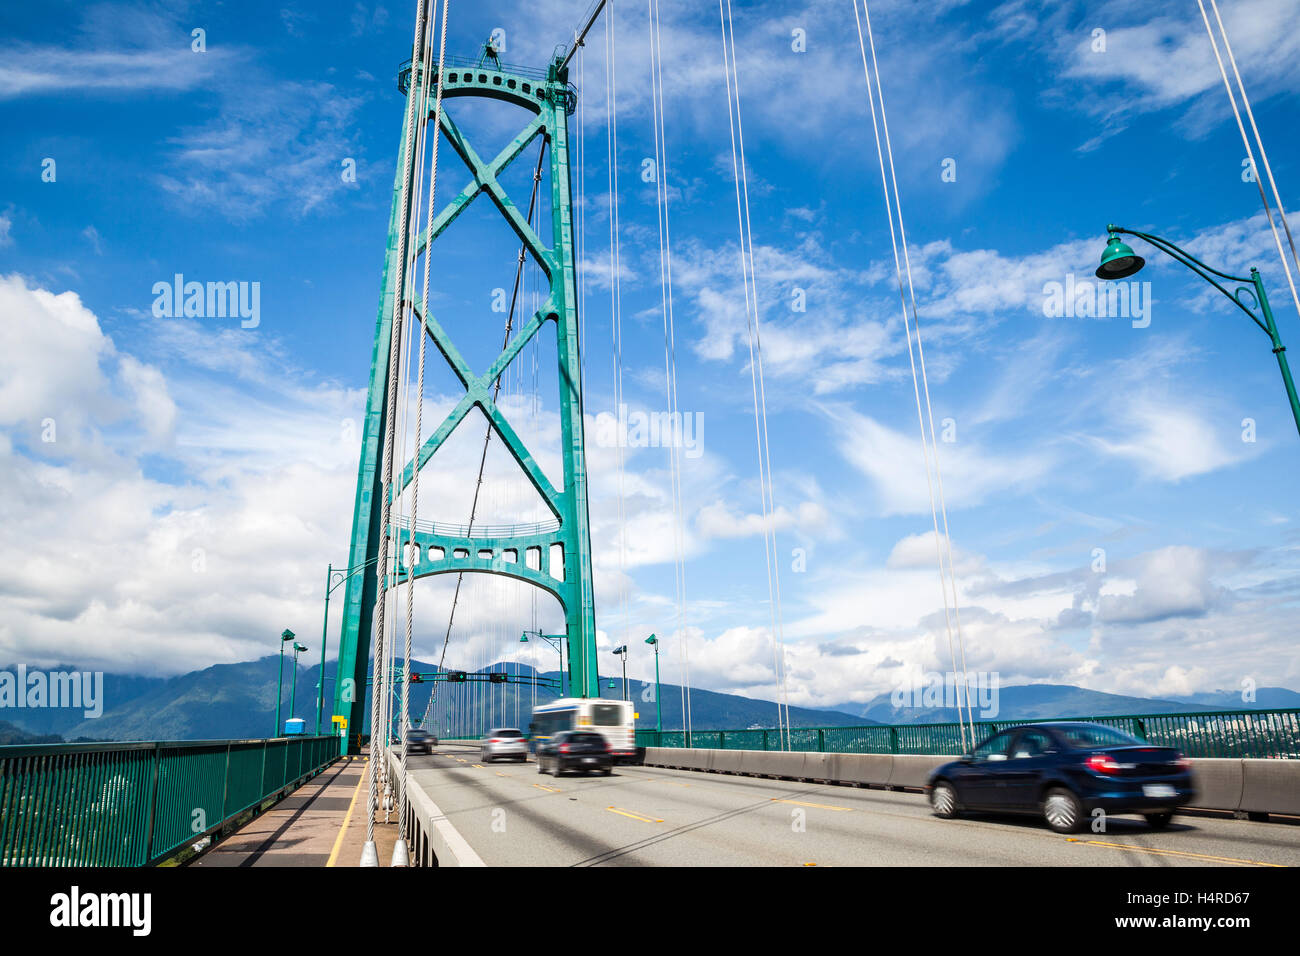 Opened in the 1938, Vancouver's Lions Gate Bridge spans the Burrard Inlet and connects the city to the Northshore - Stock Image